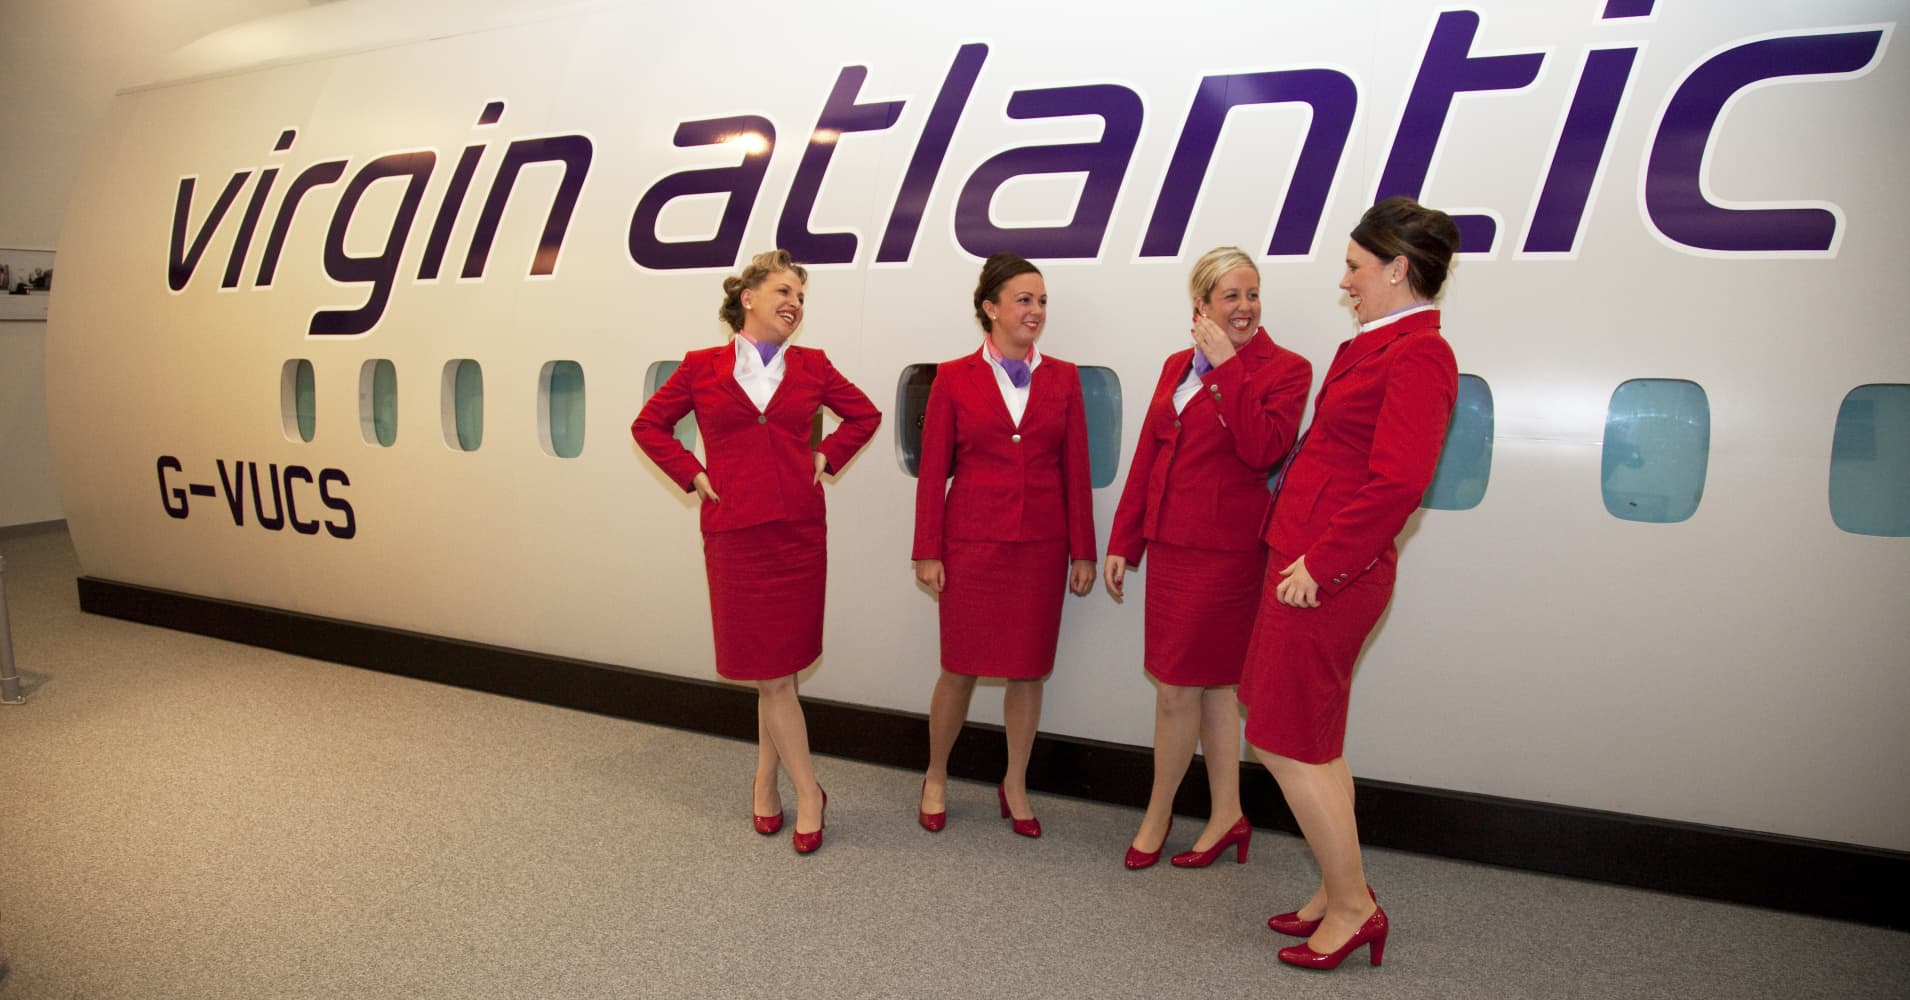 Virgin Atlantic air stewardesses training at a facility in Crawley. Potential hostesses are put through a gruelling 6 week training program, during which they are tested to their limits. With exams every day requiring an 88% score to pass.